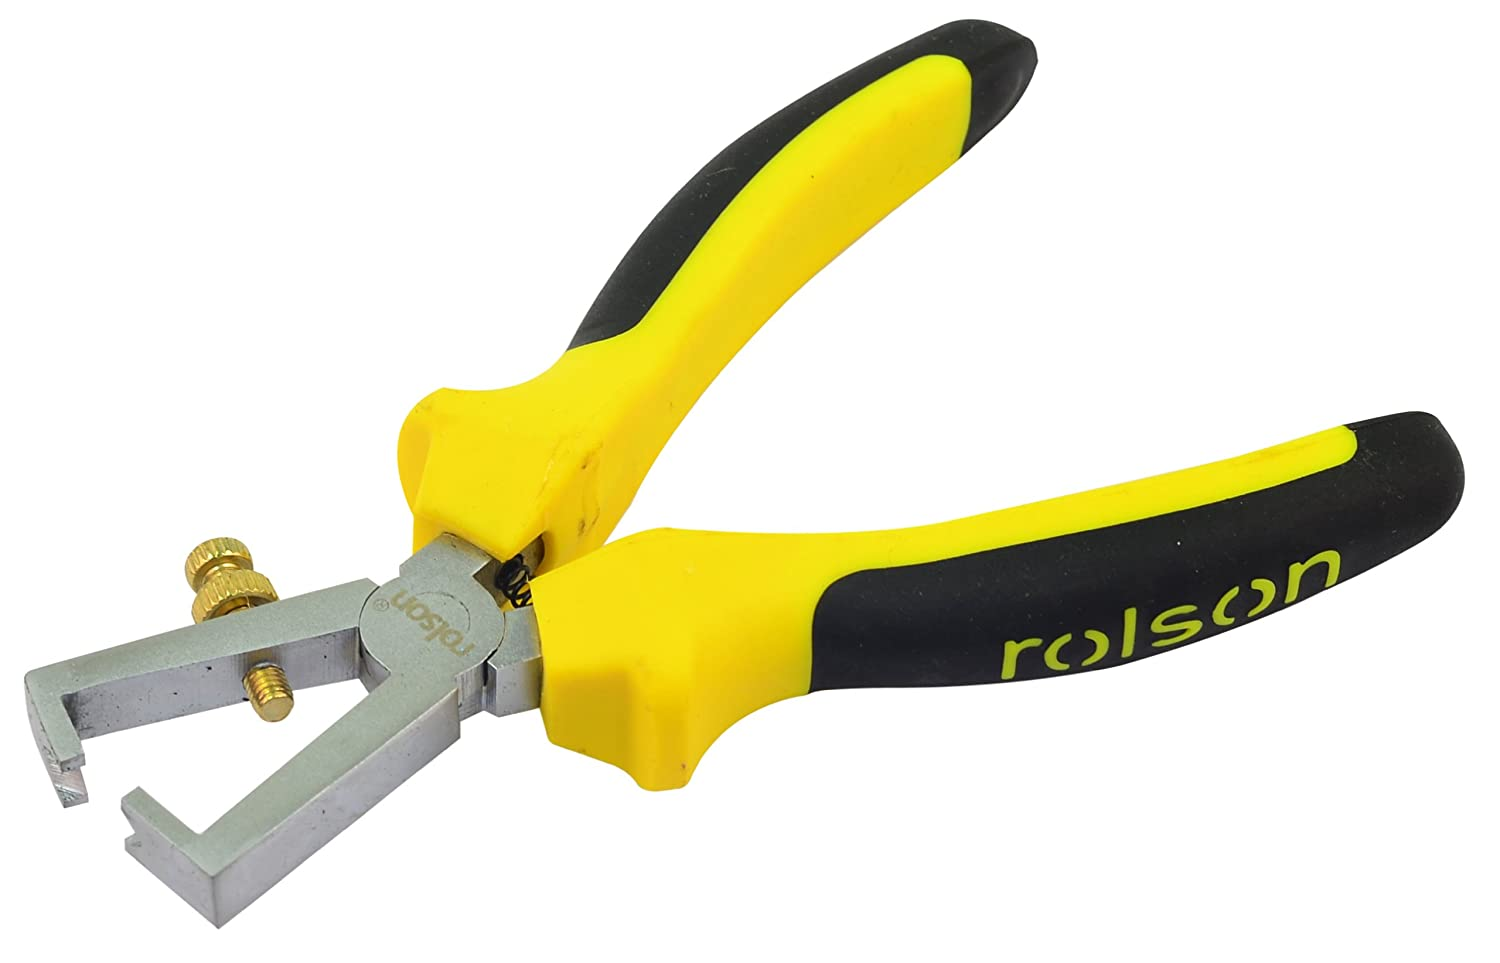 Rolson 21024 Wire Stripping Pliers, 150 mm